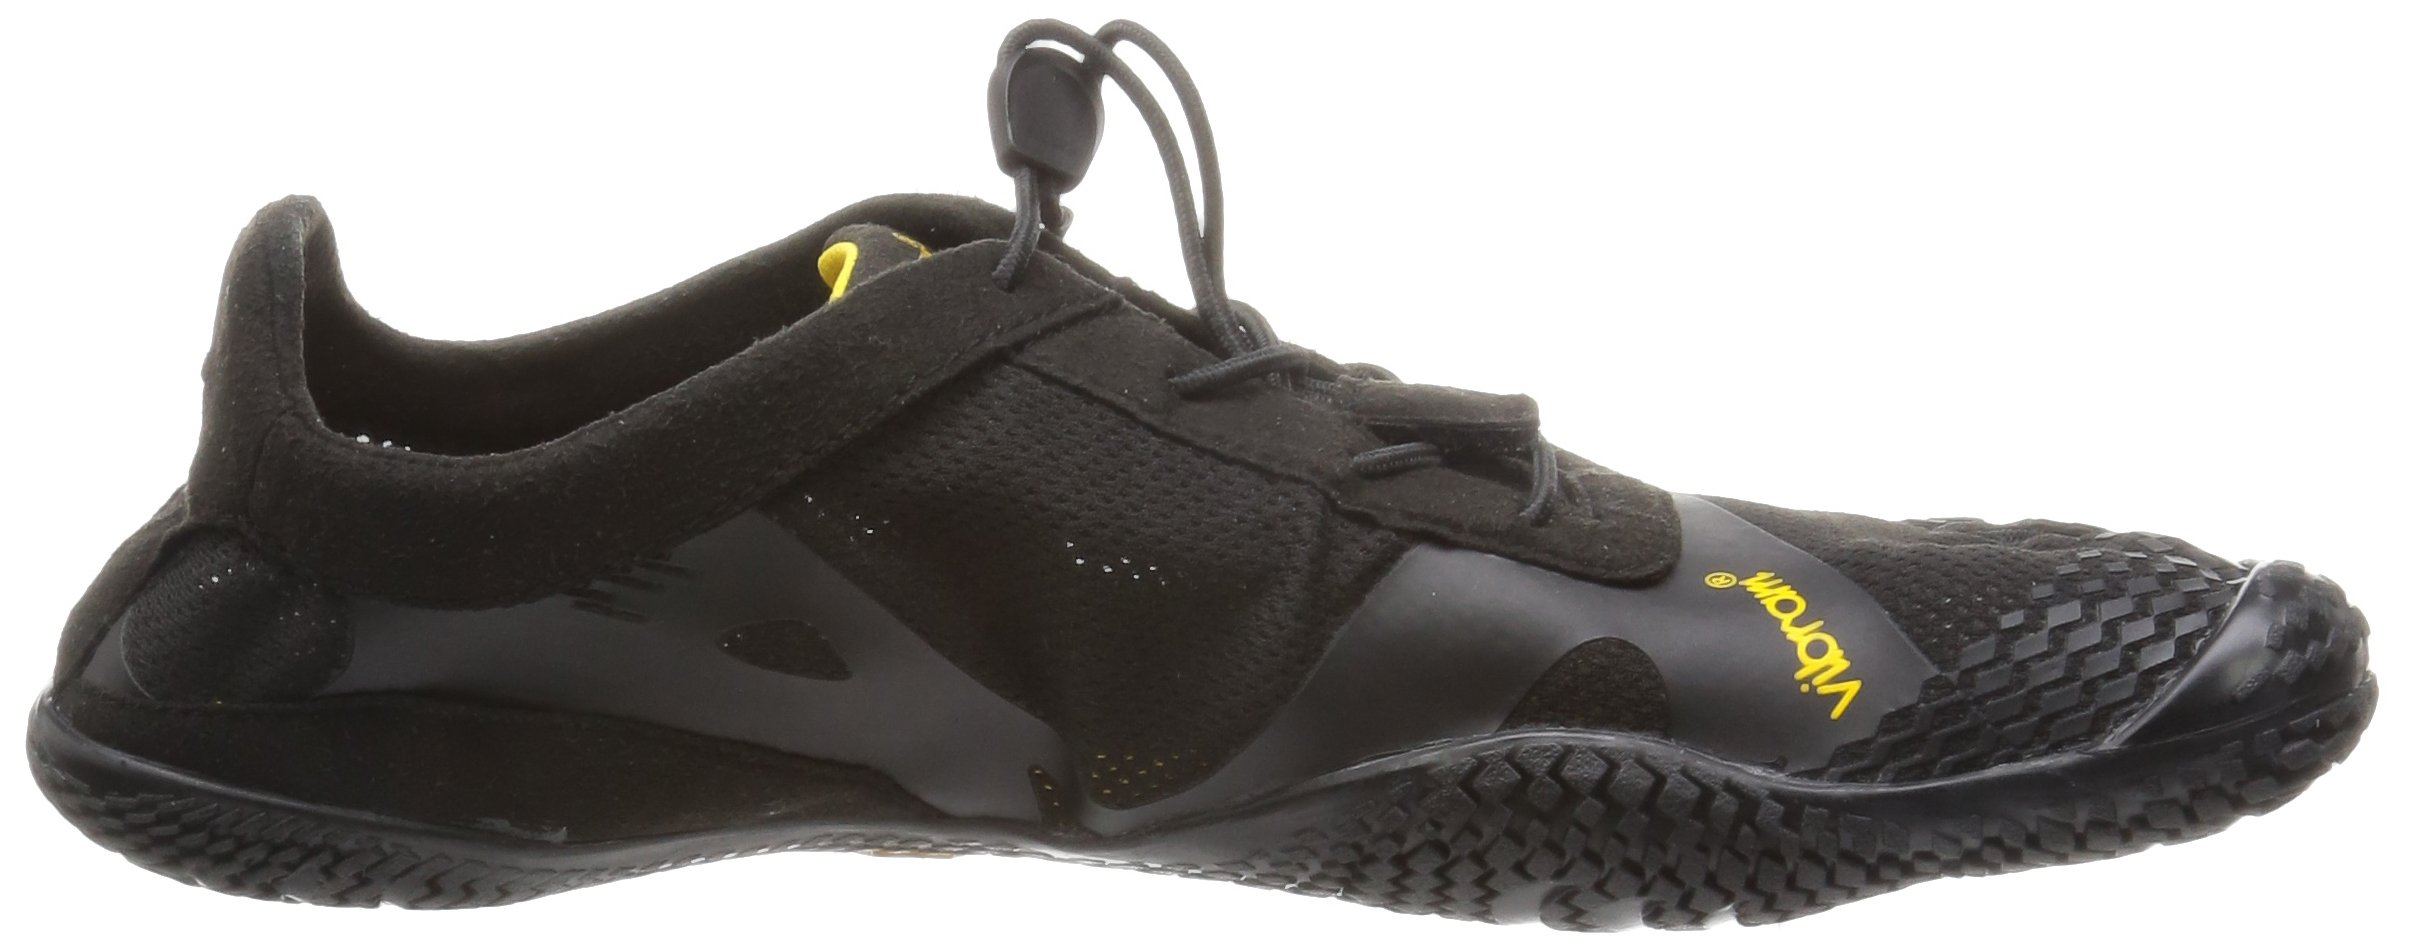 Vibram Men's KSO EVO Cross Training Shoe,Black,41 EU/8.5-9.0 M US by Vibram (Image #10)